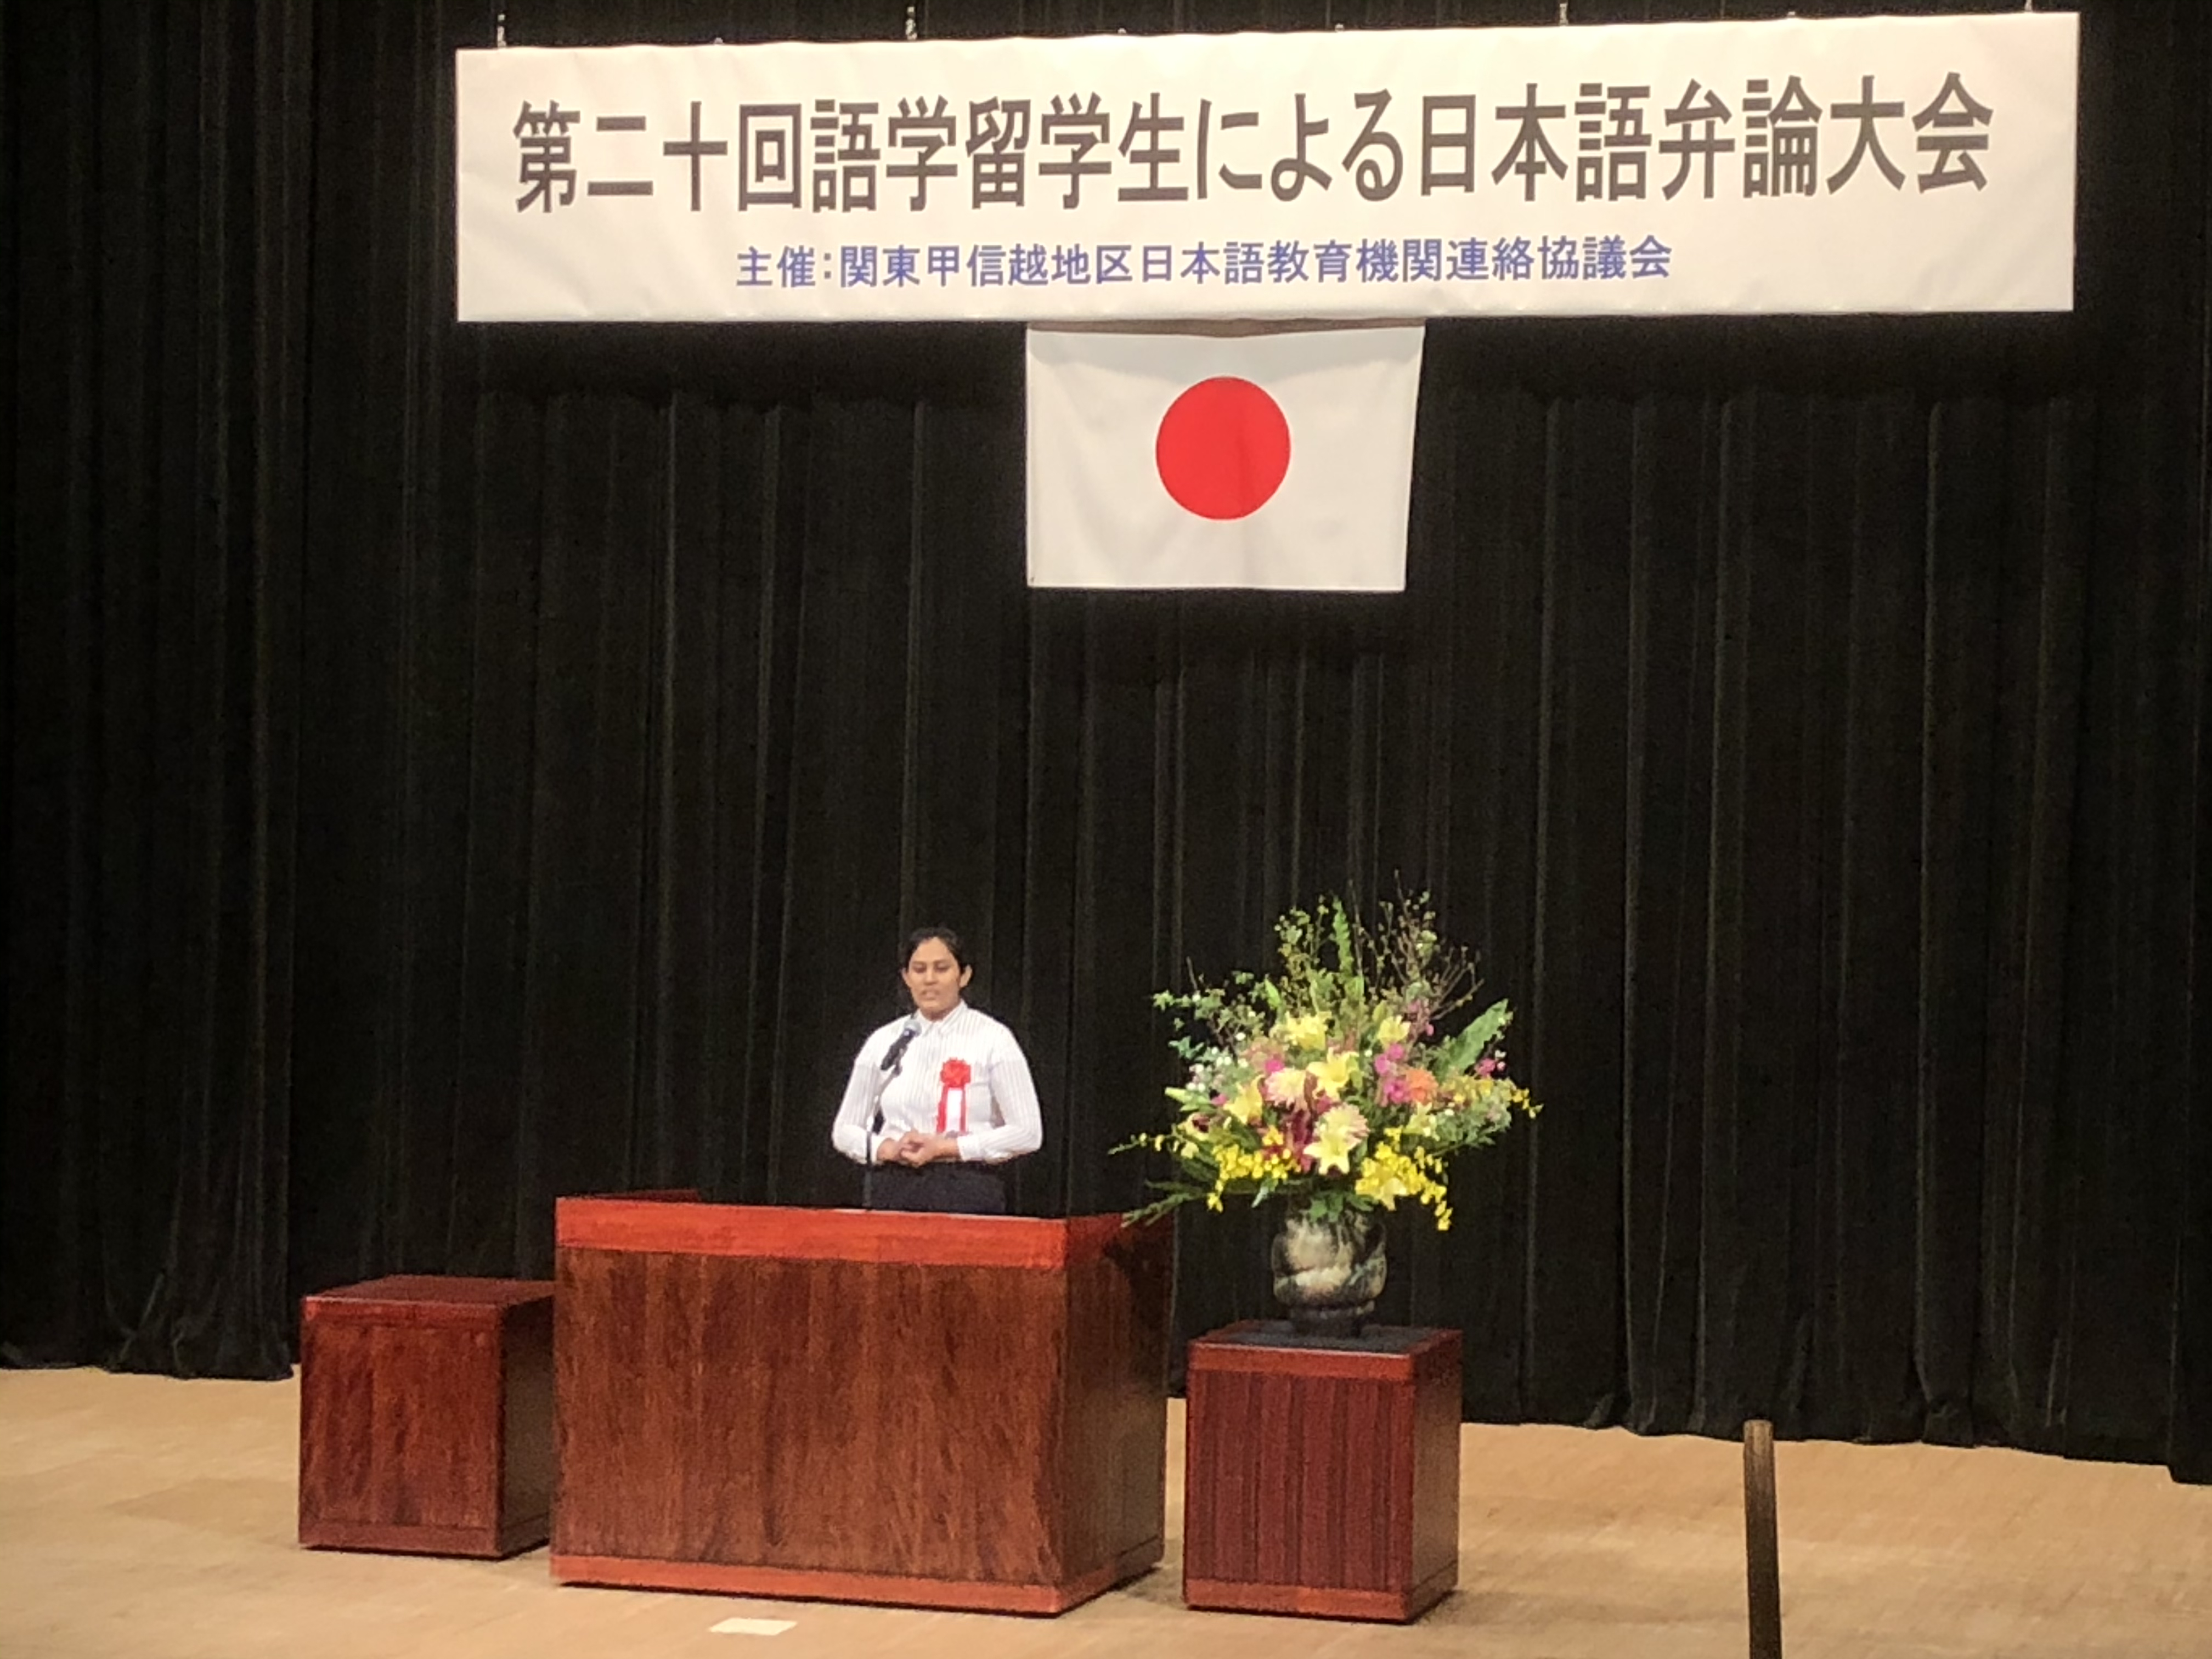 Our student participated in the Japanese speech contest.